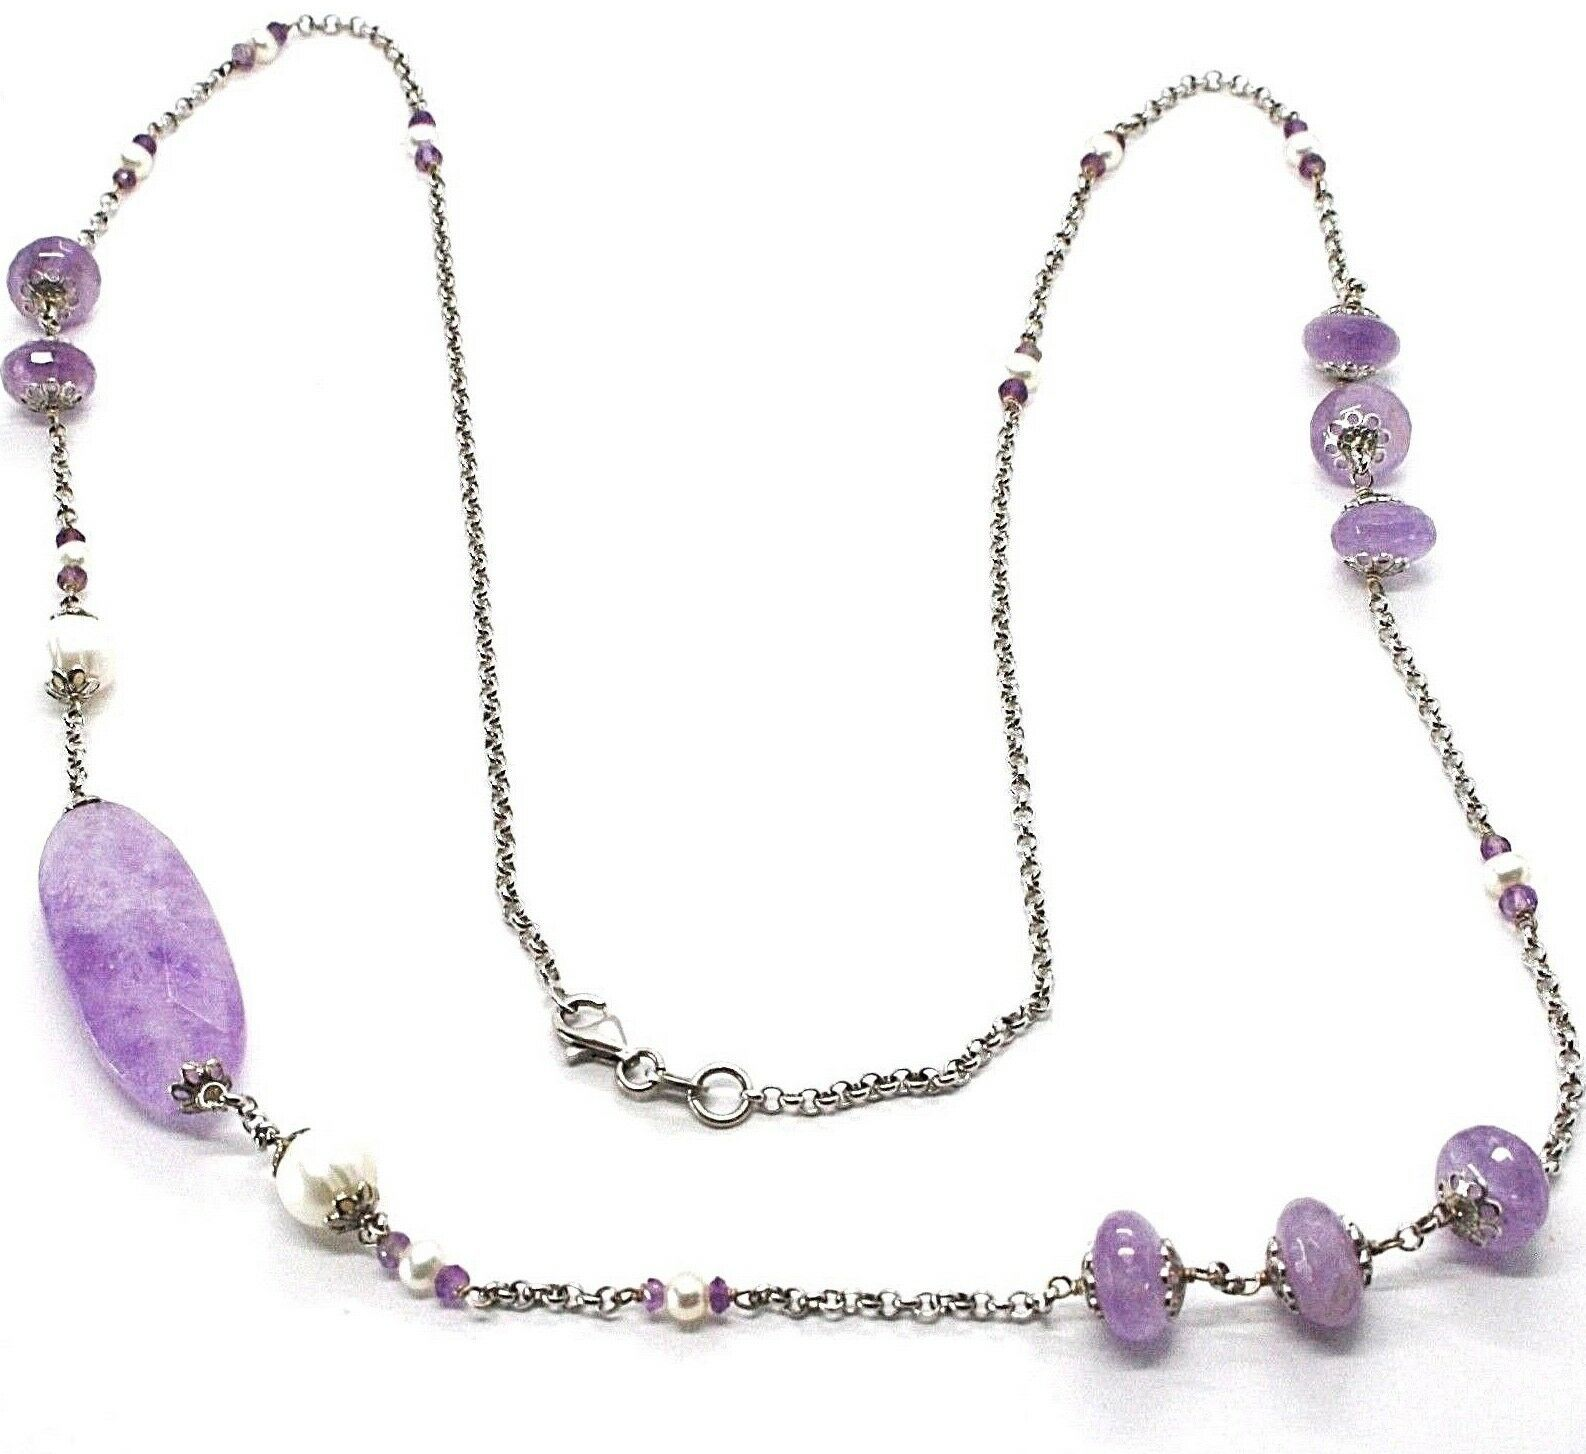 SILVER 925 NECKLACE, AMETHYST, OVAL AND DISCO, PEARLS, LENGTH 80 CM